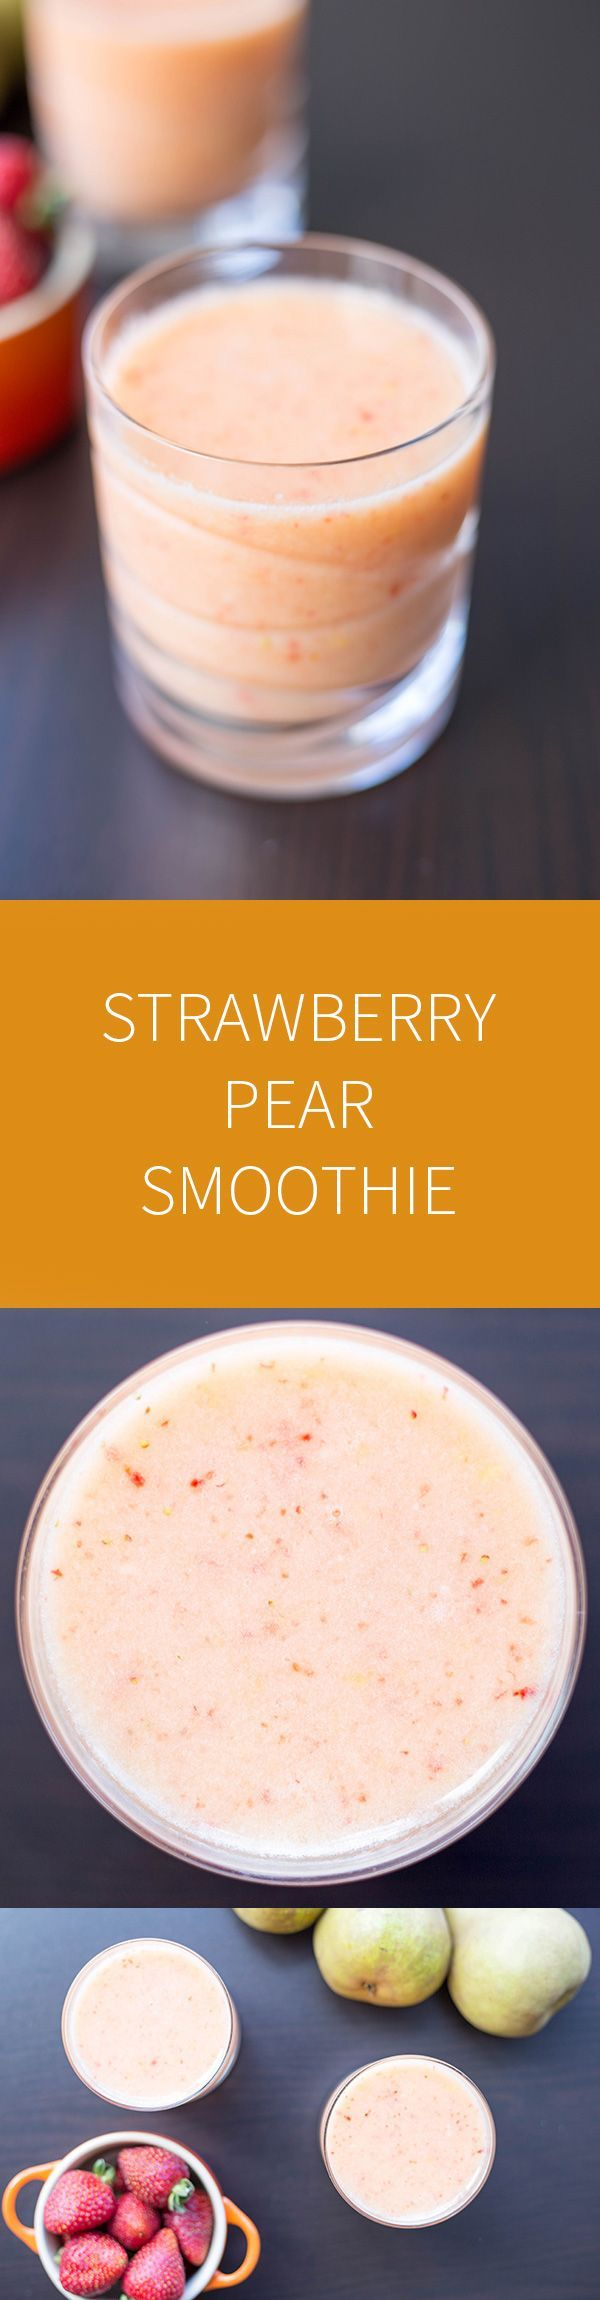 A summer fruit strawberry pear smoothie. This smoothie uses fresh summer fruits and juice instead of sugar for a healthy snack.